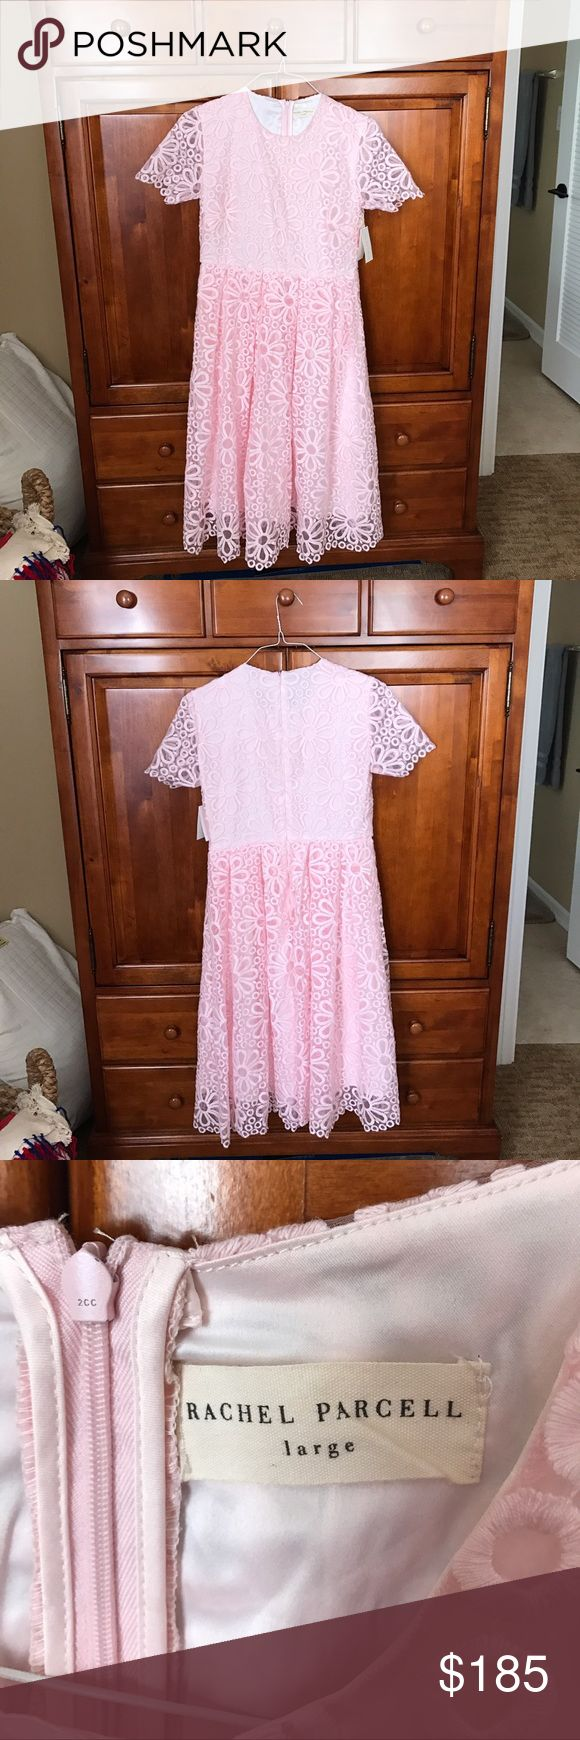 Rachel Parcell dress It is very modest. It's light pink, hits slightly below the knees. It has a lace overlay and is perfect for spring time. Rachel Parcell Dresses